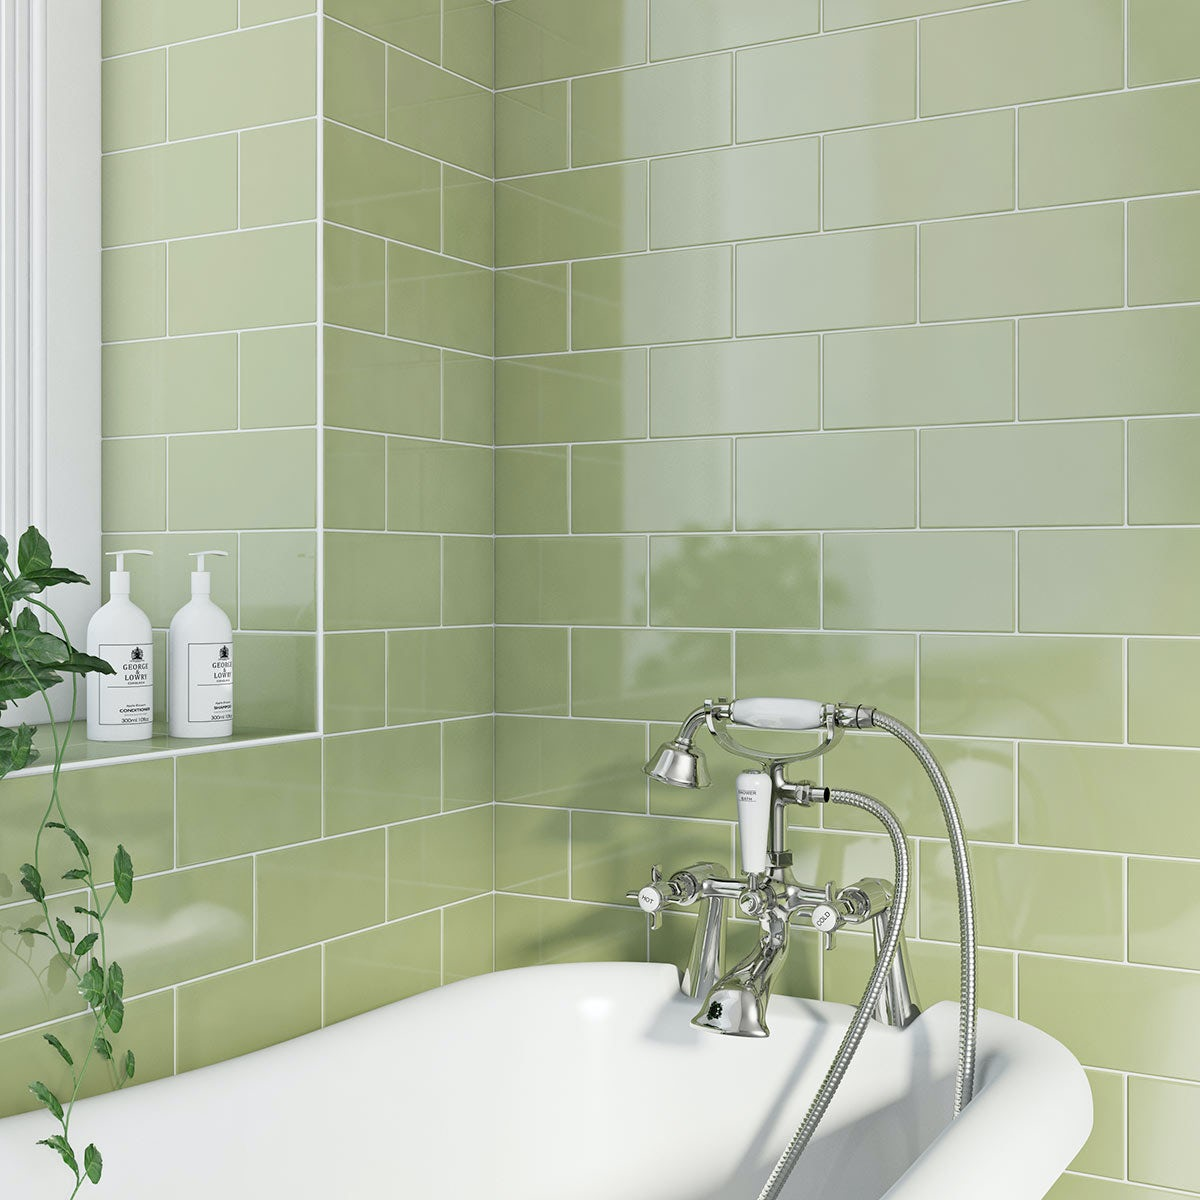 pistachio metro tile with bath and tap